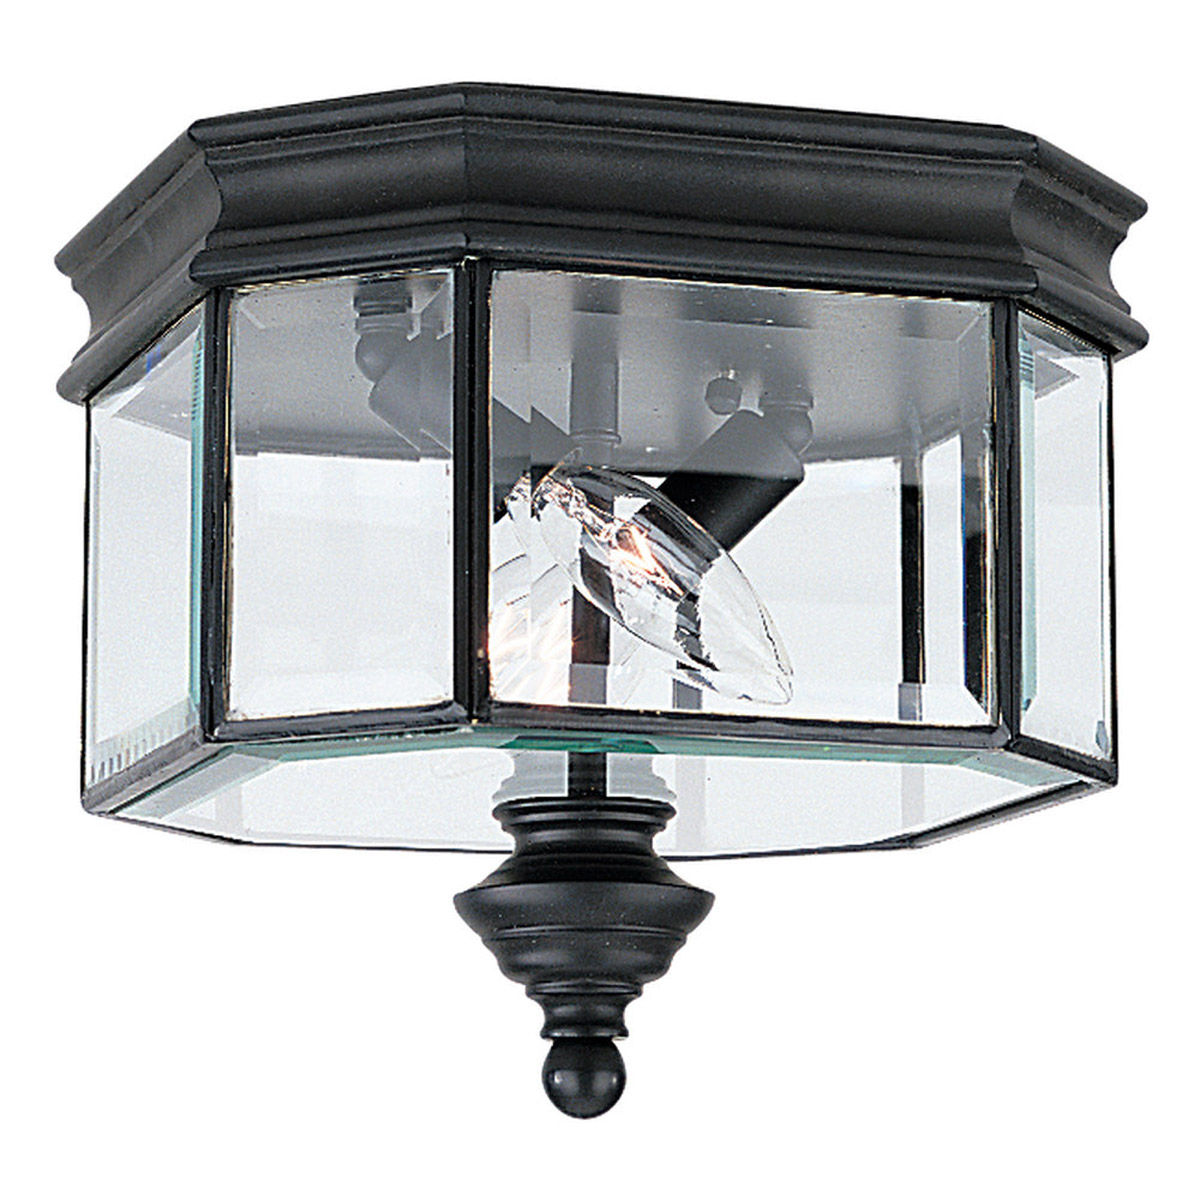 Sea Gull Lighting Hill Gate 2 Light Outdoor Wall Lantern in Black 8834-12 photo